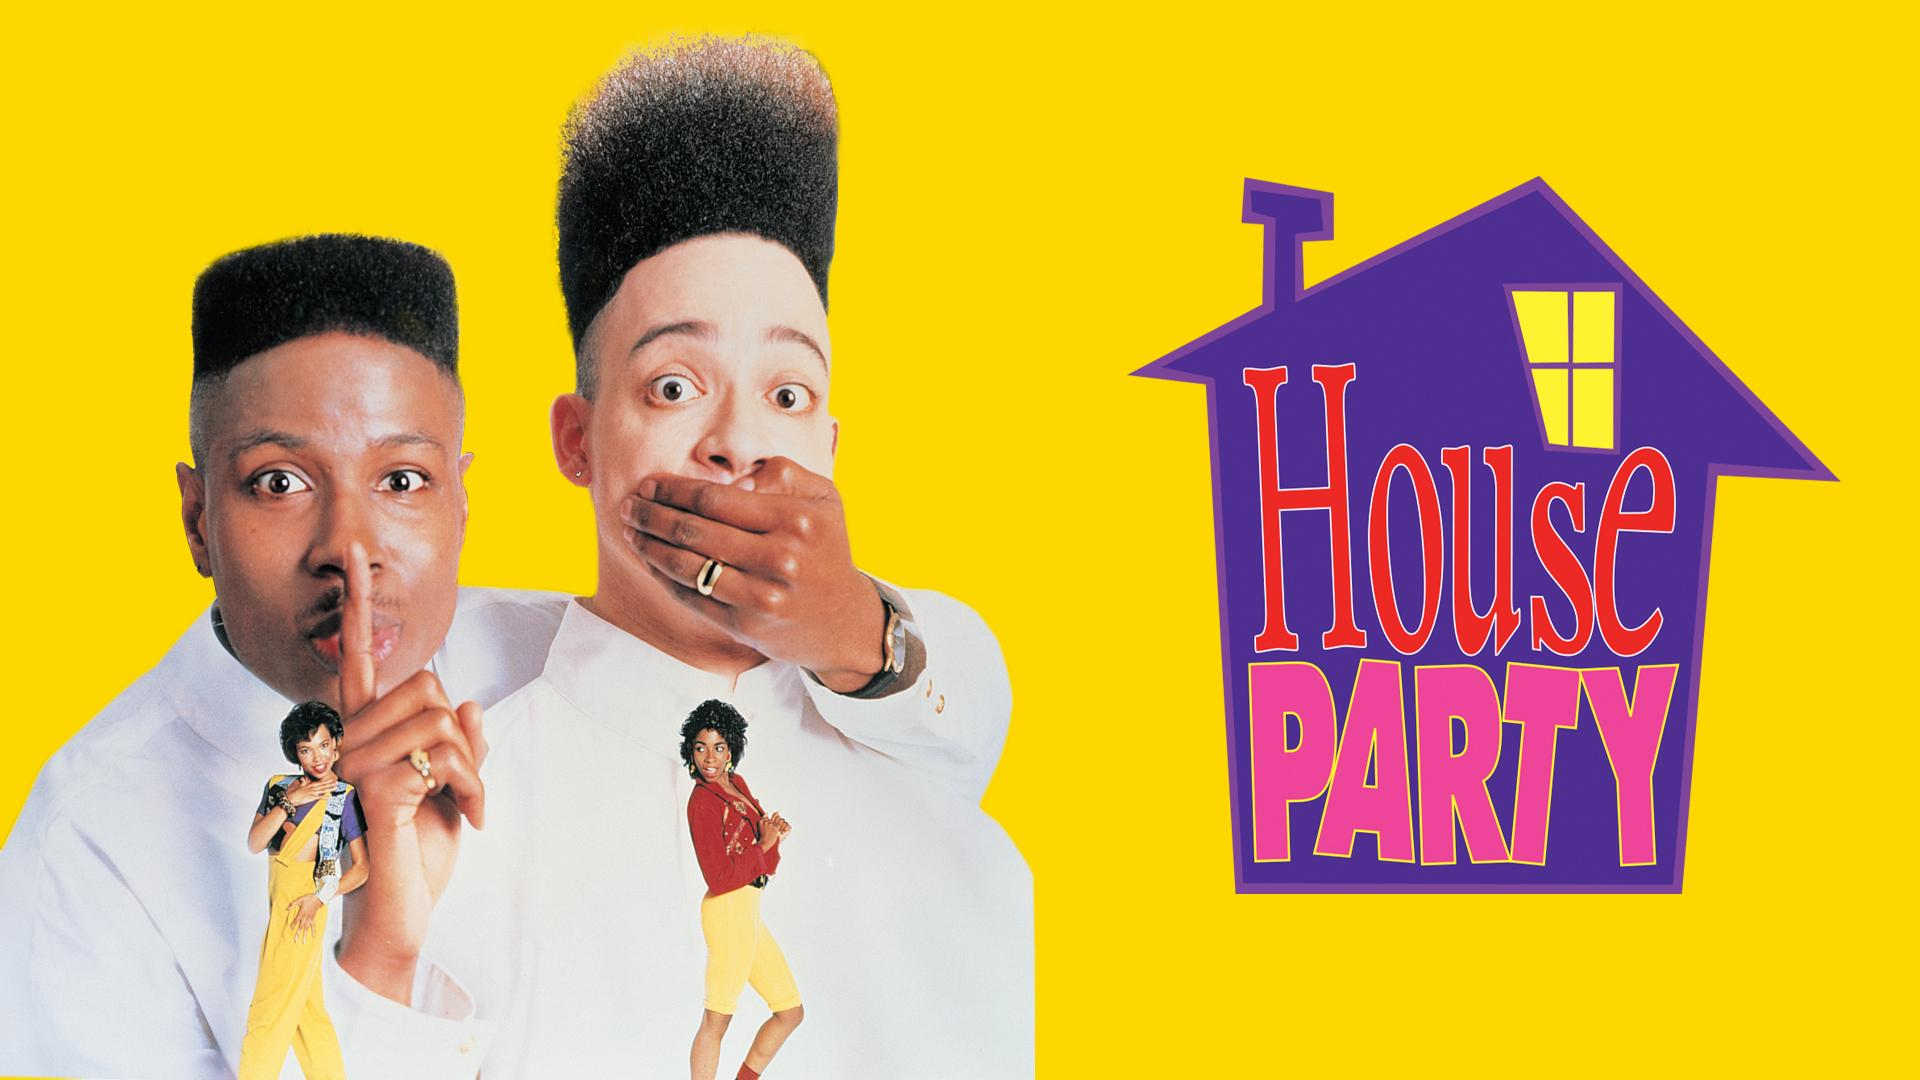 House Party - New Releases category image